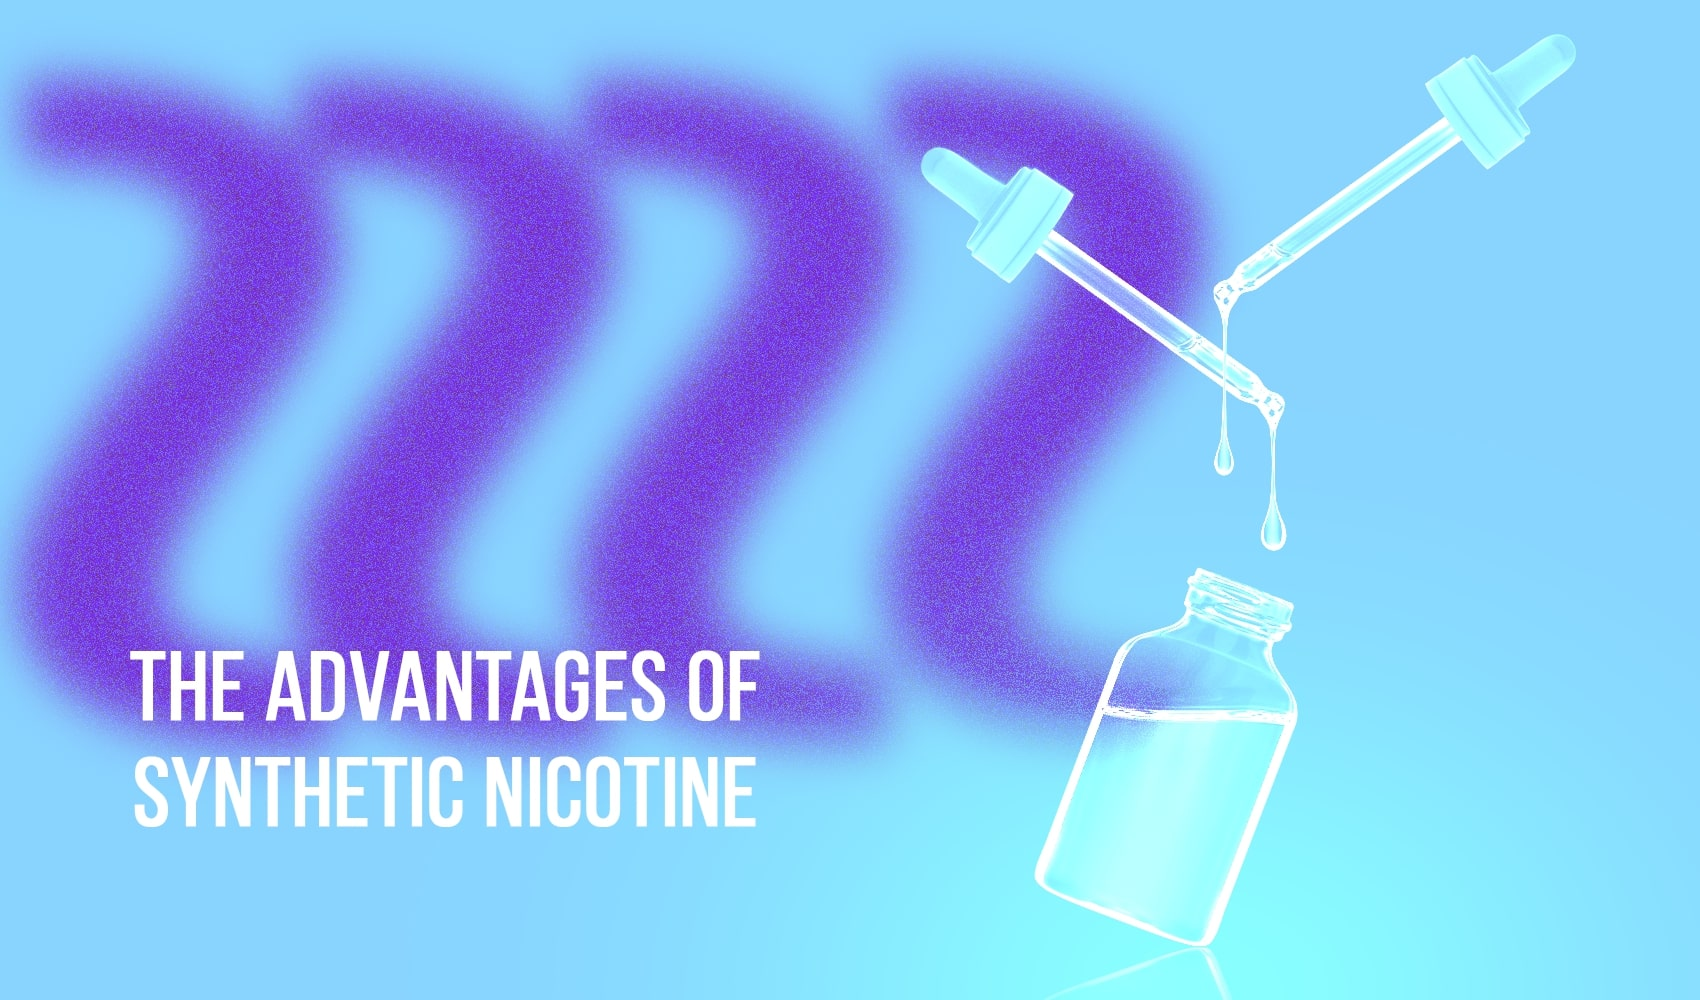 The Advantages of Synthetic Nicotine | Cloudtheorem